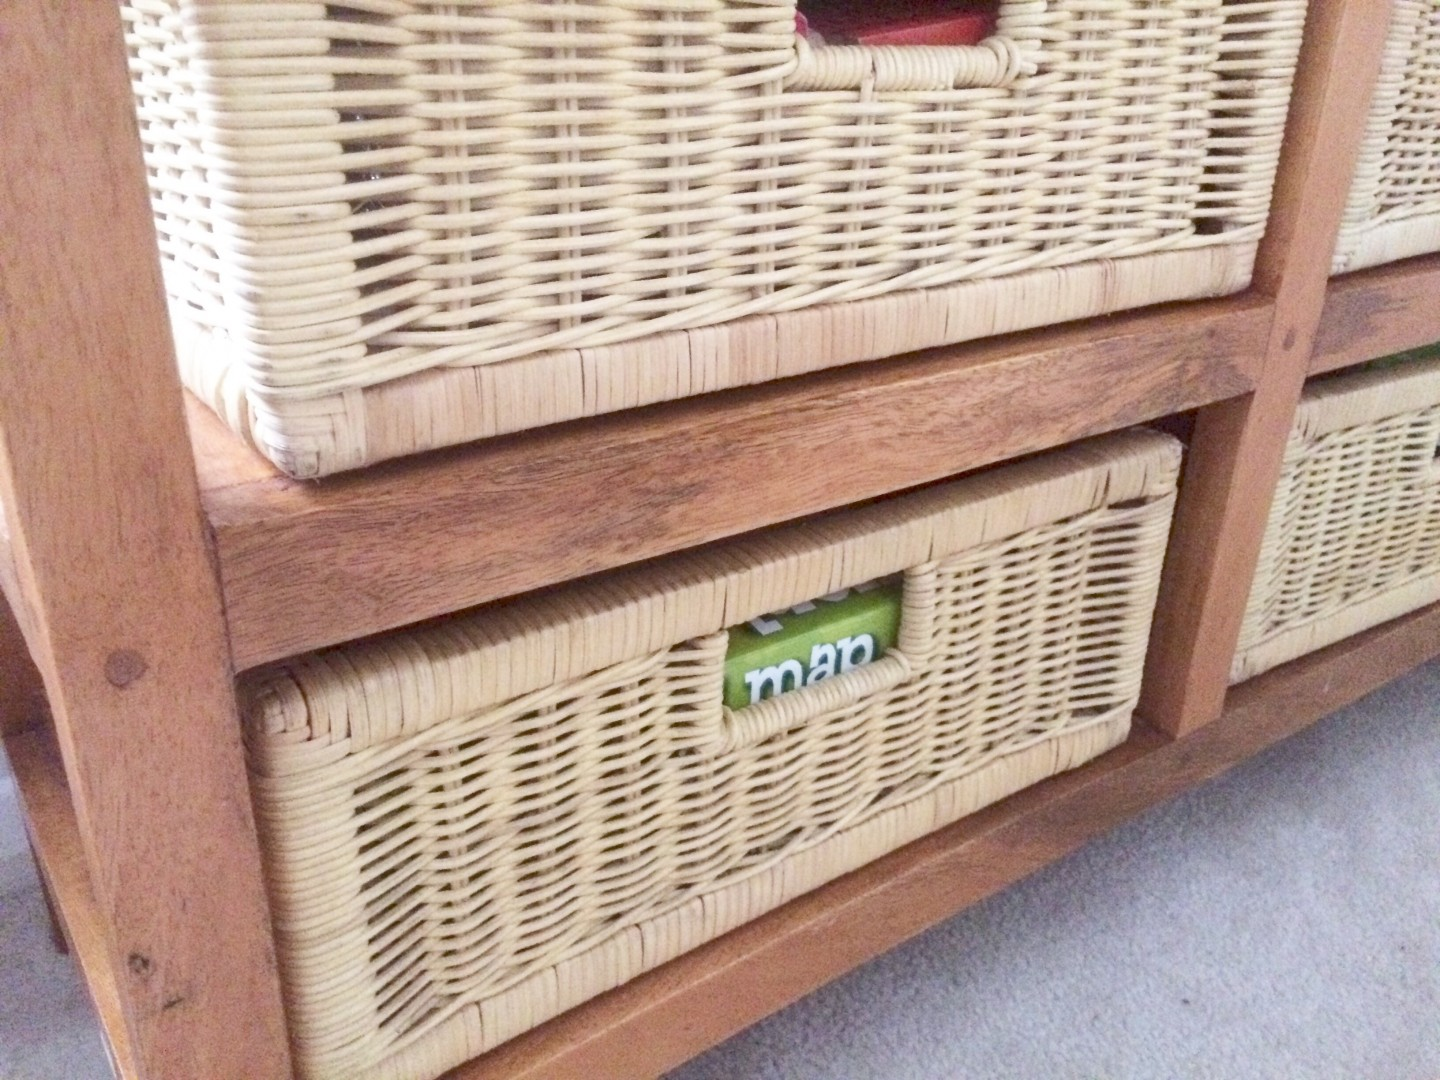 Updating Max's Bedroom with Rattan Direct Storage